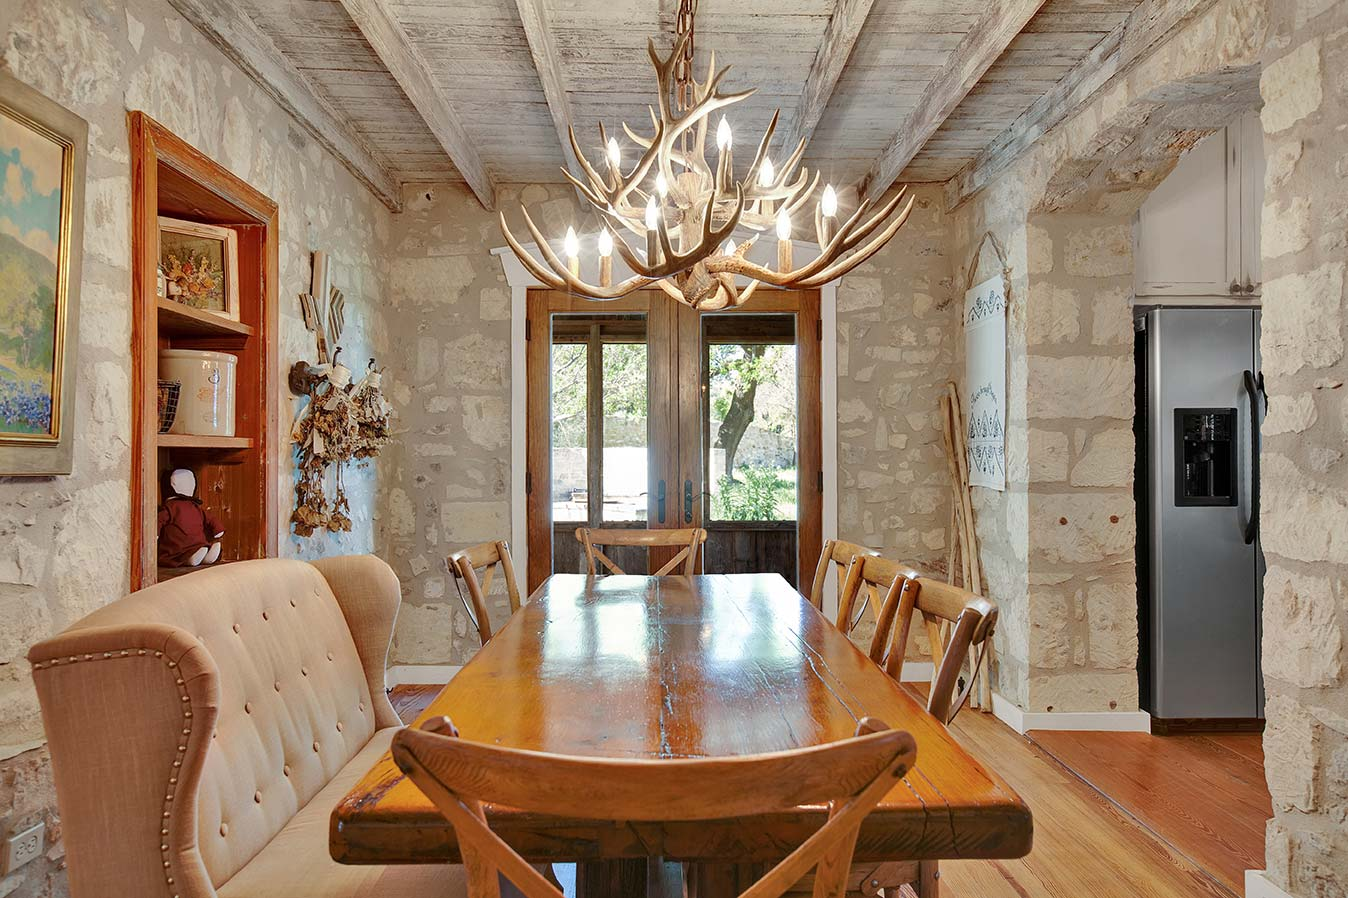 fredericksburg-realty-squaw-creek-ranch-real-estate-land-for-sale-home-house-historic-20.jpg